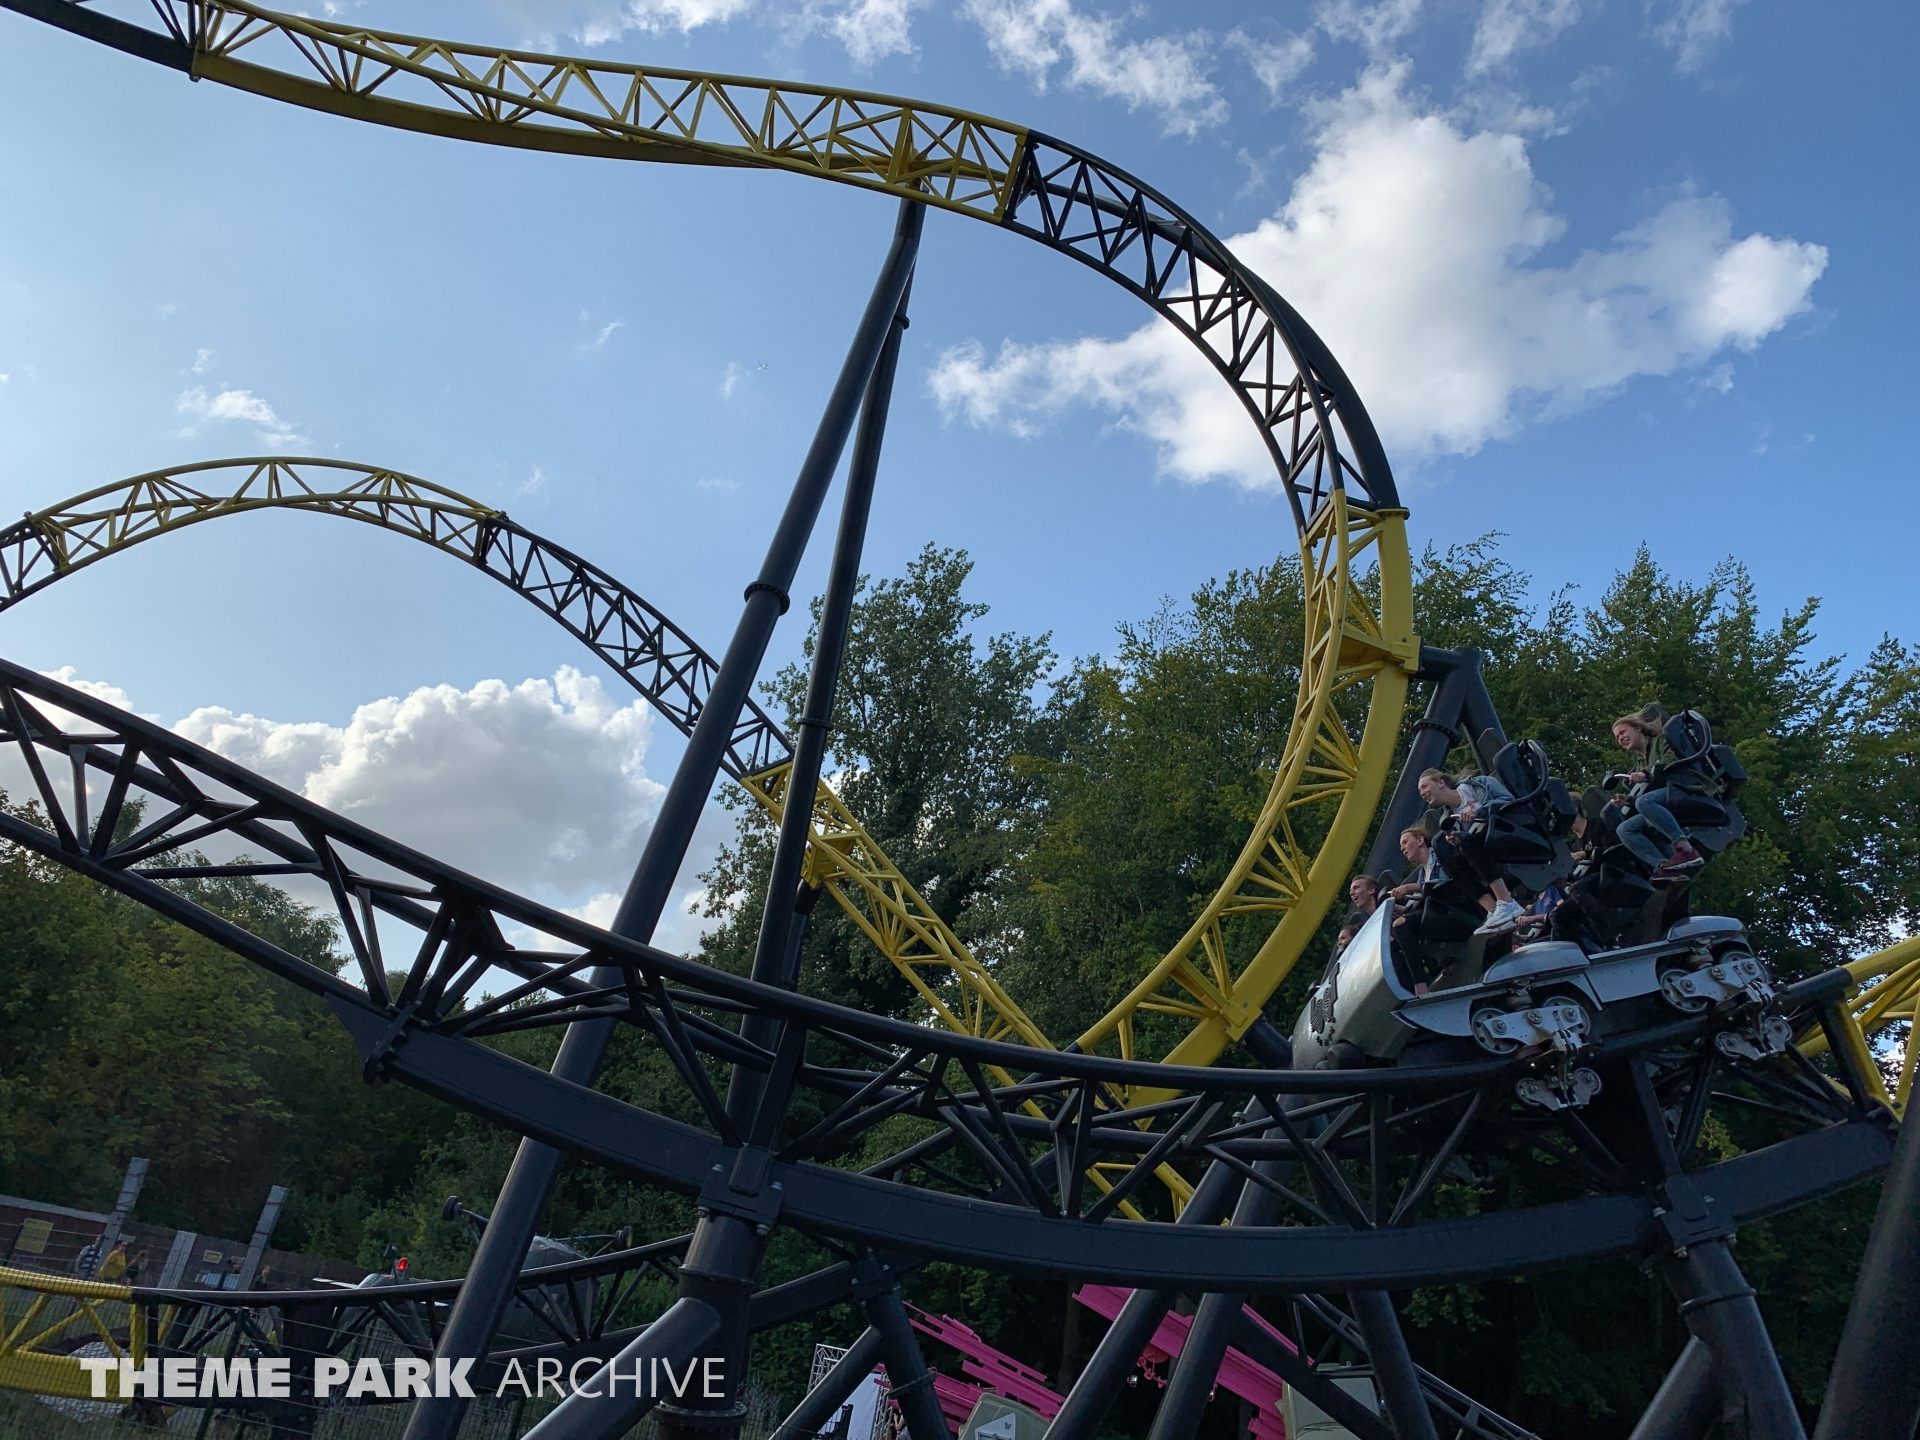 Lost Gravity at Walibi Holland